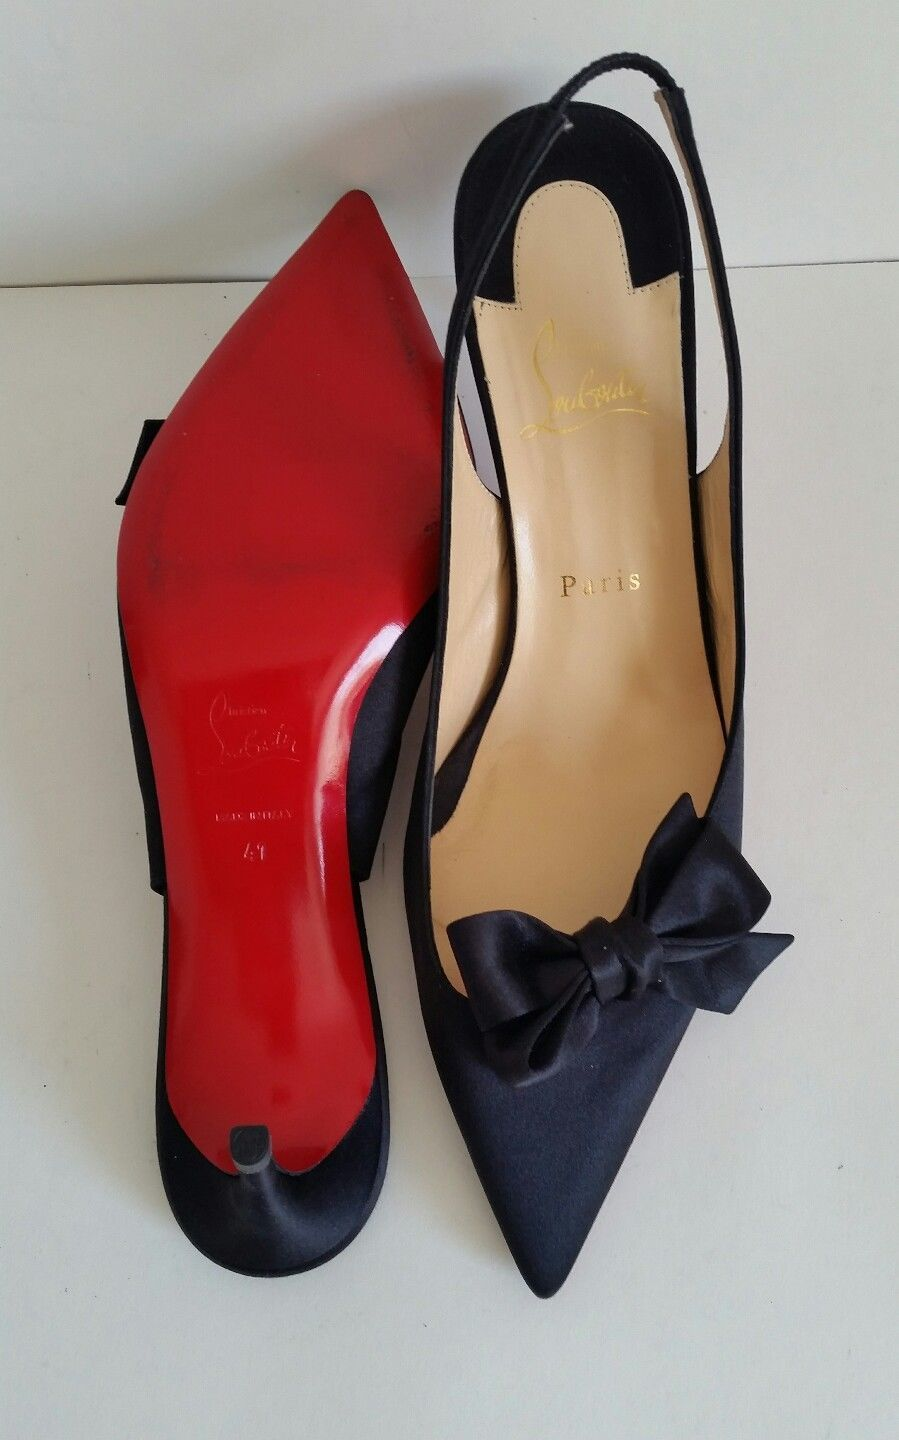 3ec89e68e5ef CHRISTIAN LOUBOUTIN  Yasling  Bow Mid 70mm Pump - Size 10 - MSRP ...